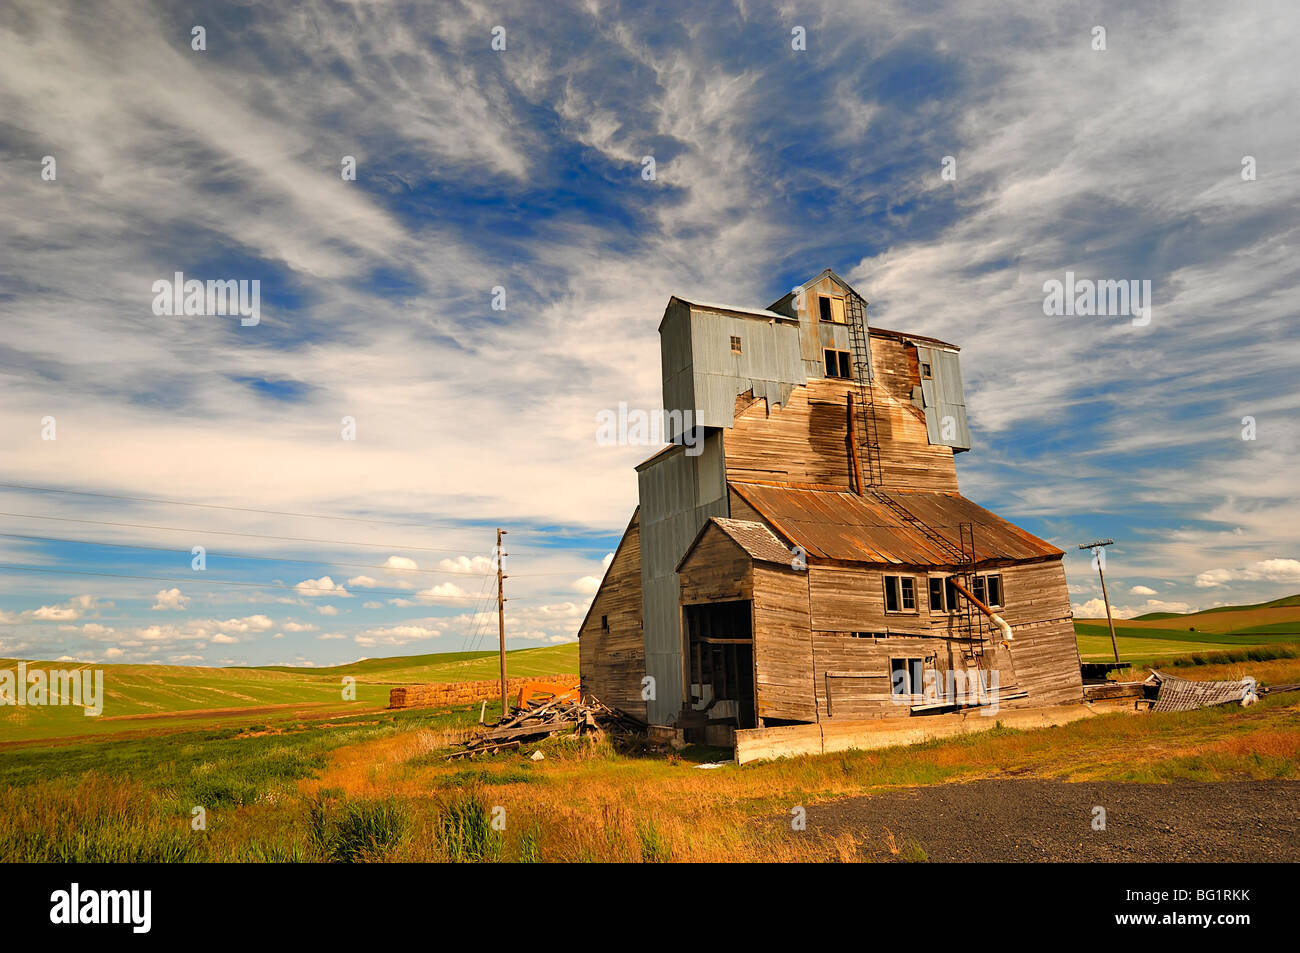 Agricultural old building in the Palouse region of Washington State, USA - Stock Image